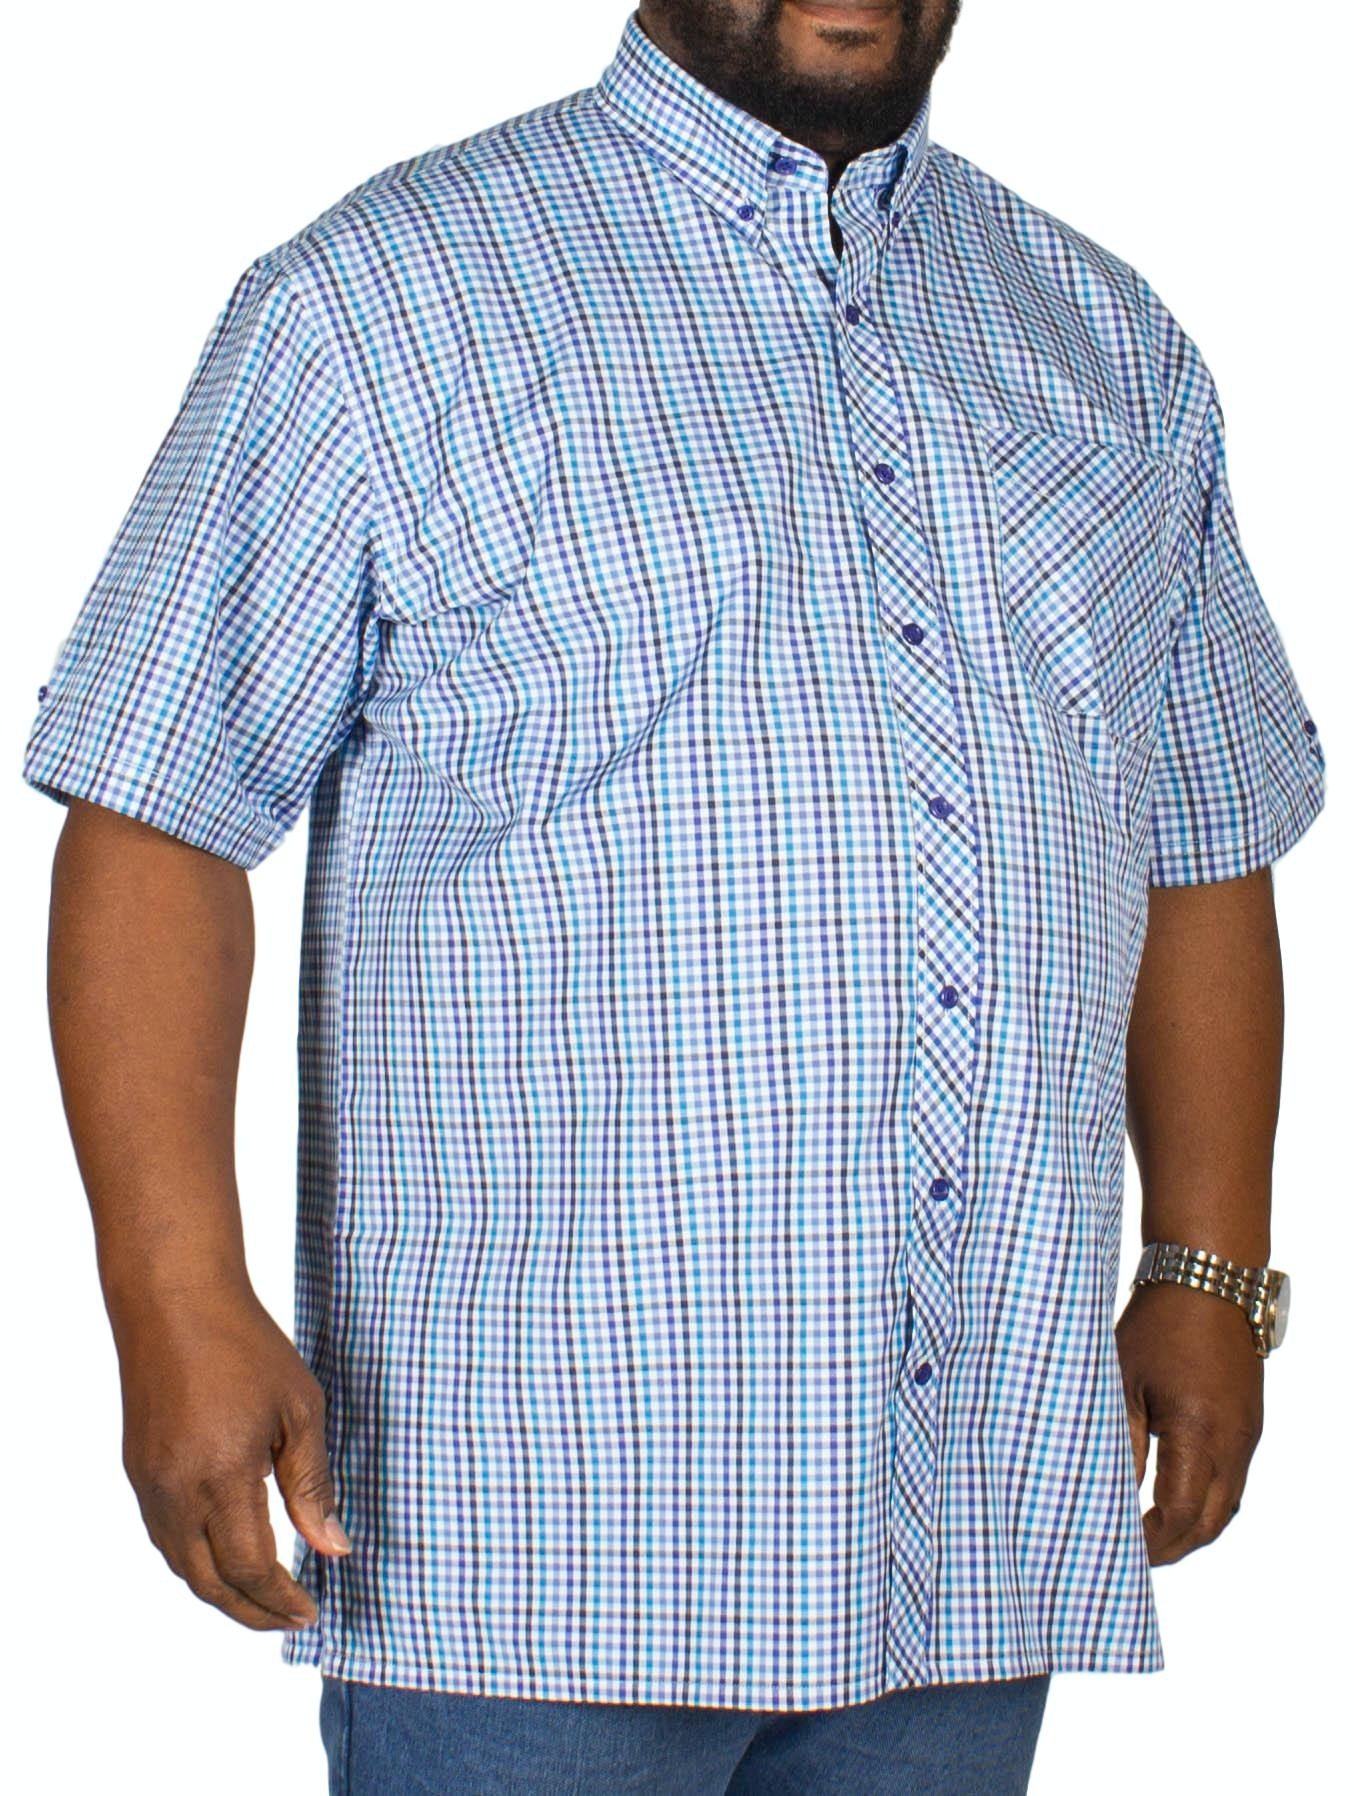 Espionage Gingham Check Short Sleeve Shirt Navy/Blue/Turq